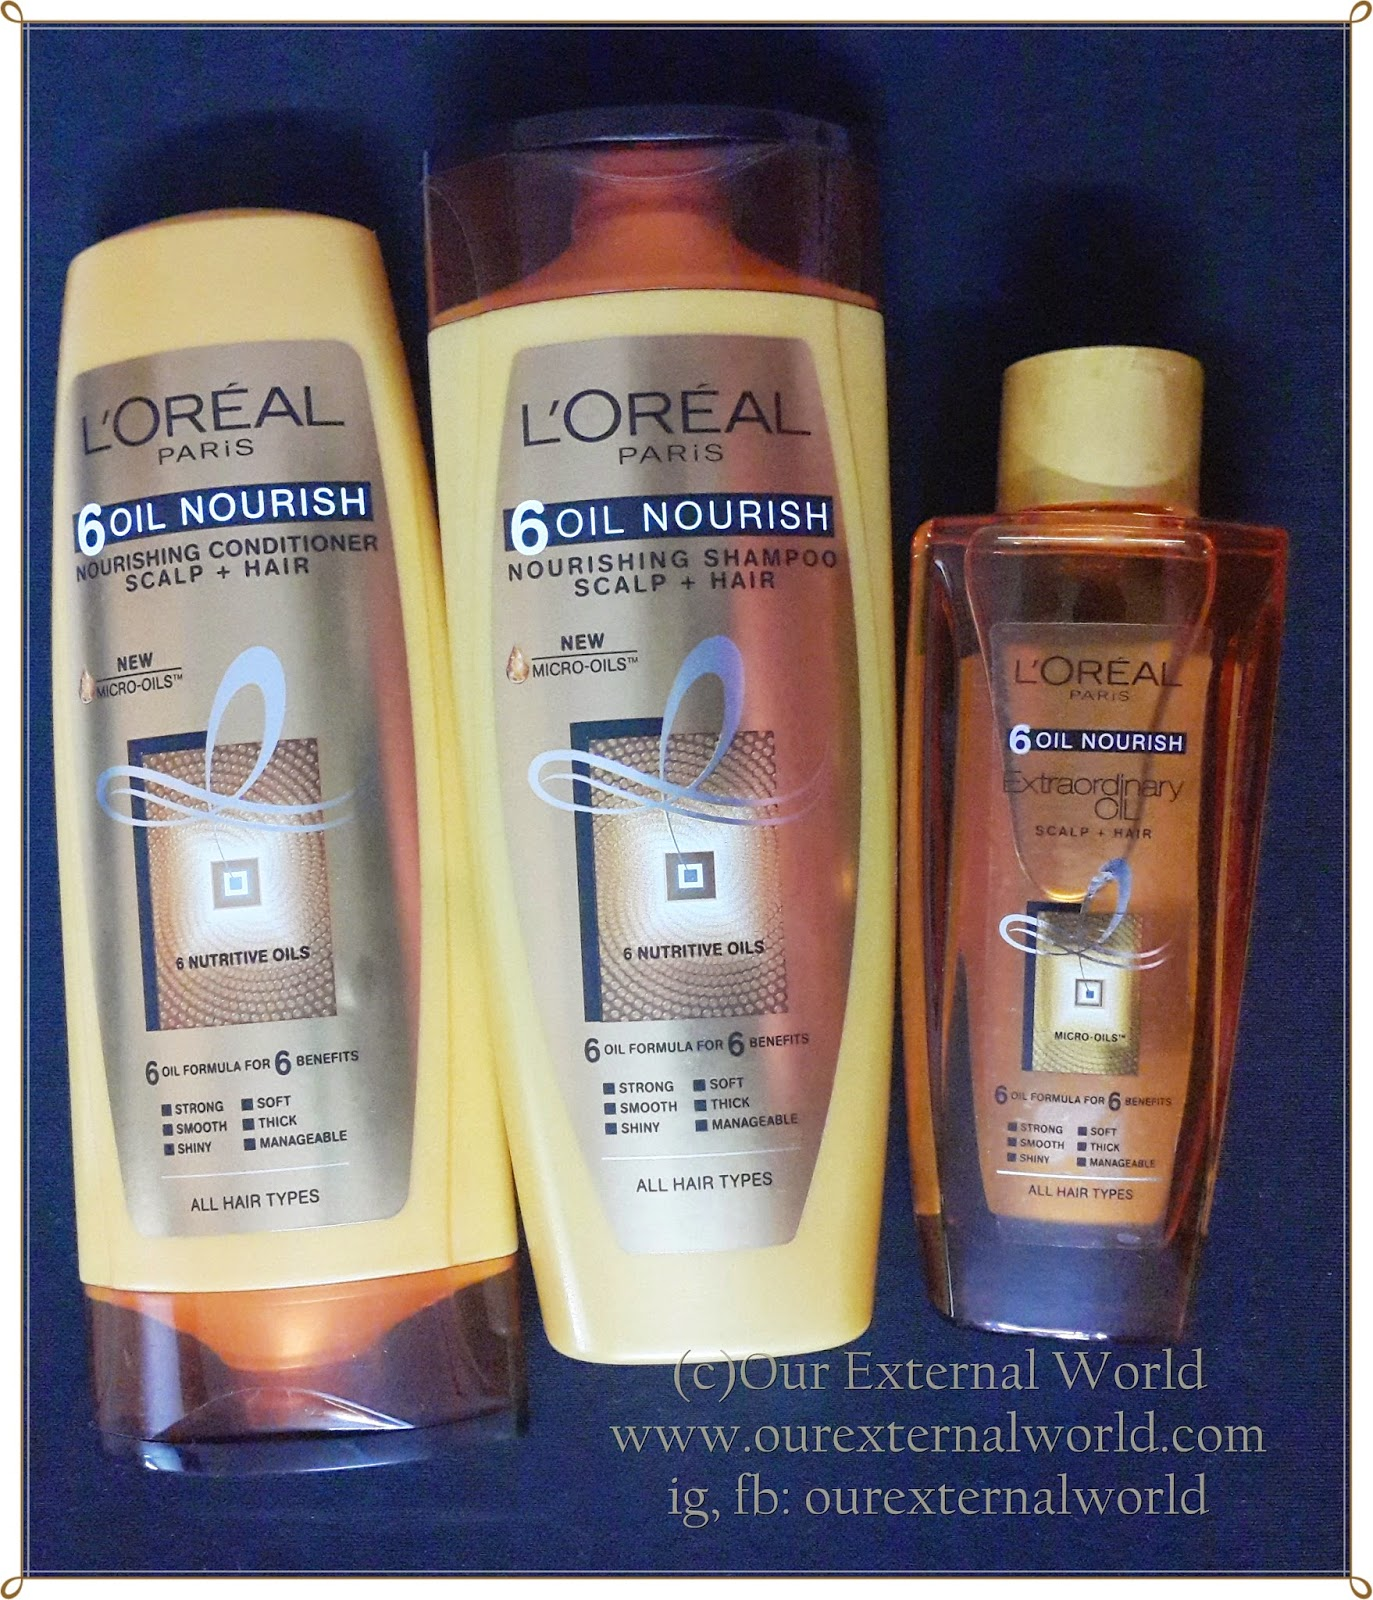 L'Oreal Paris 6 Oil Nourish Shampoo And Conditioner Review